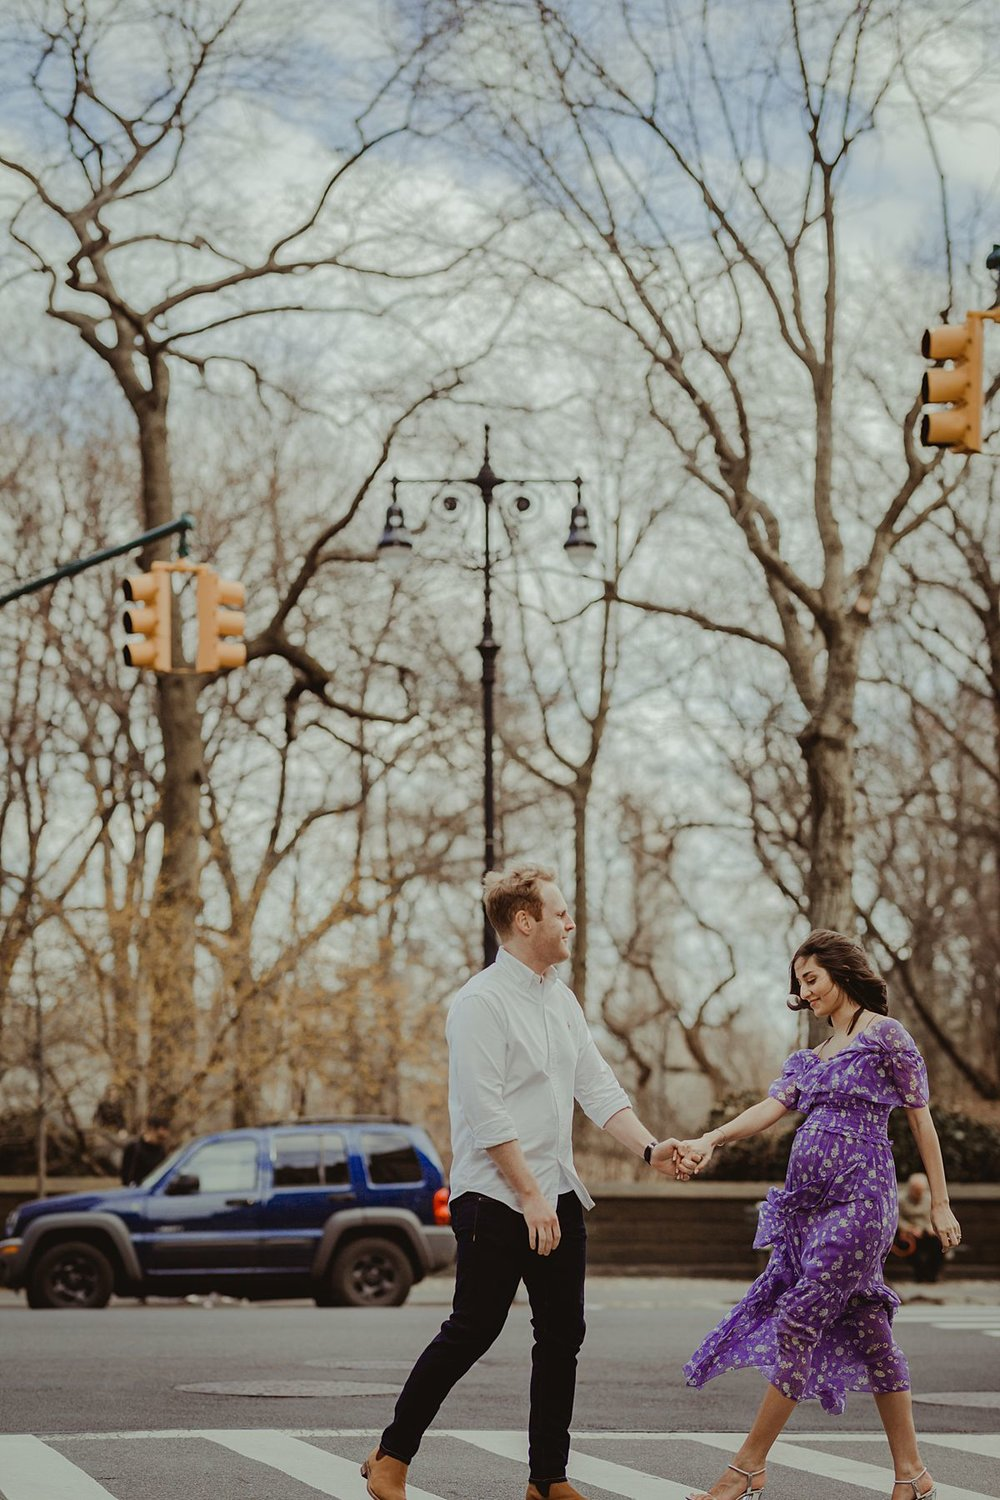 expecting couple walks along pedestrian crossing on central park west with central park in the background for maternity photo session. mom wears feminine purple and white maternity dress. photo by nyc family and newborn photographer krystil mcdowall